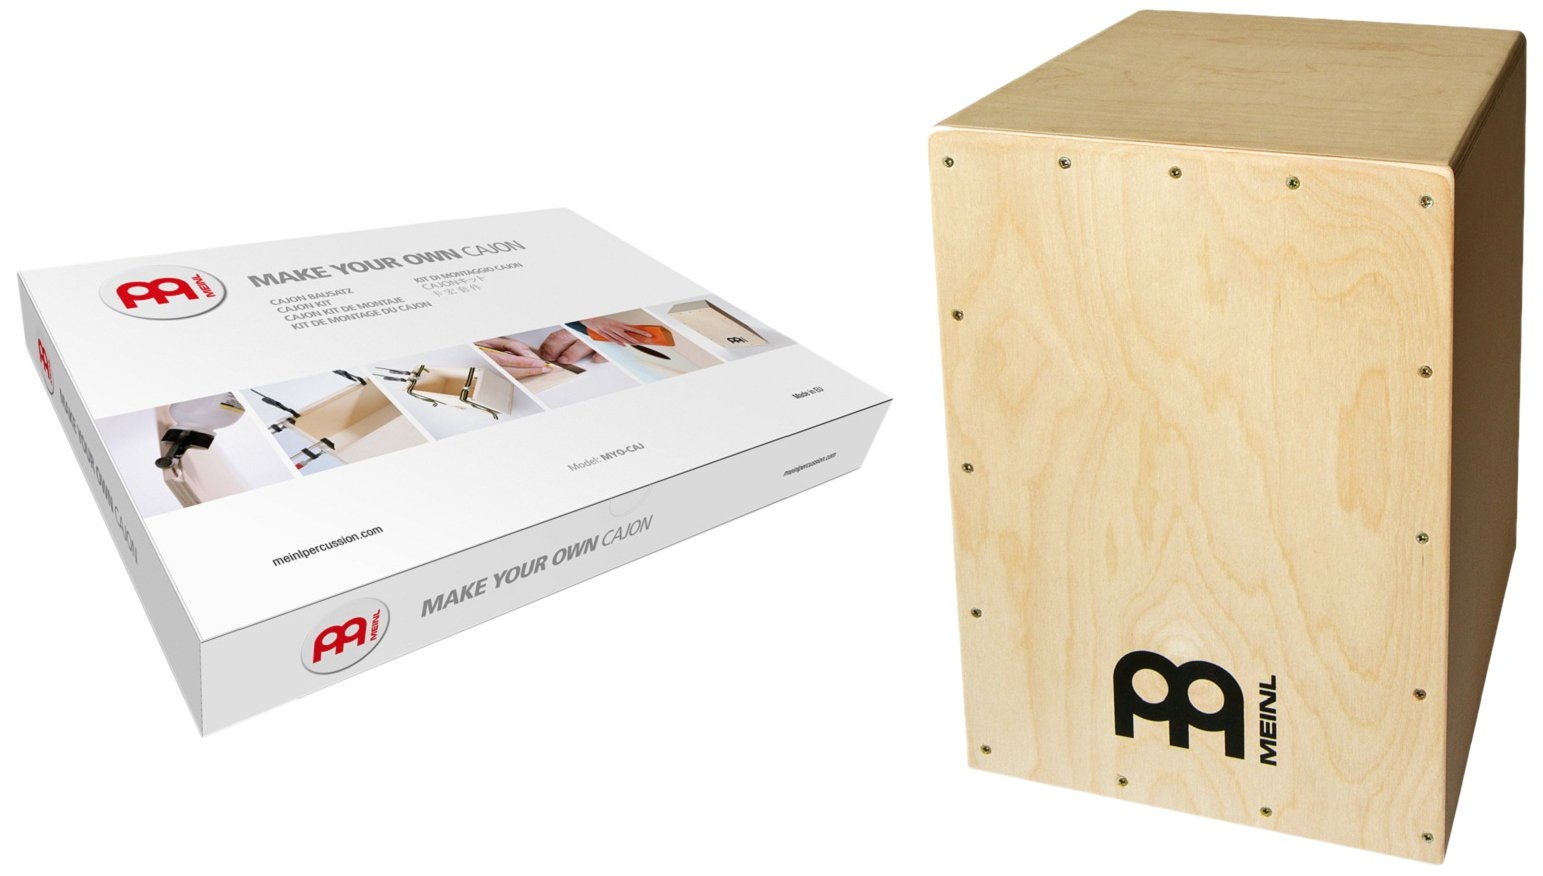 Meinl Make Your Own Cajon Kit with Snares - MADE IN EUROPE - Baltic Birch Wood, Includes Easy to Follow Manual (MYO-CAJ) by Meinl Percussion